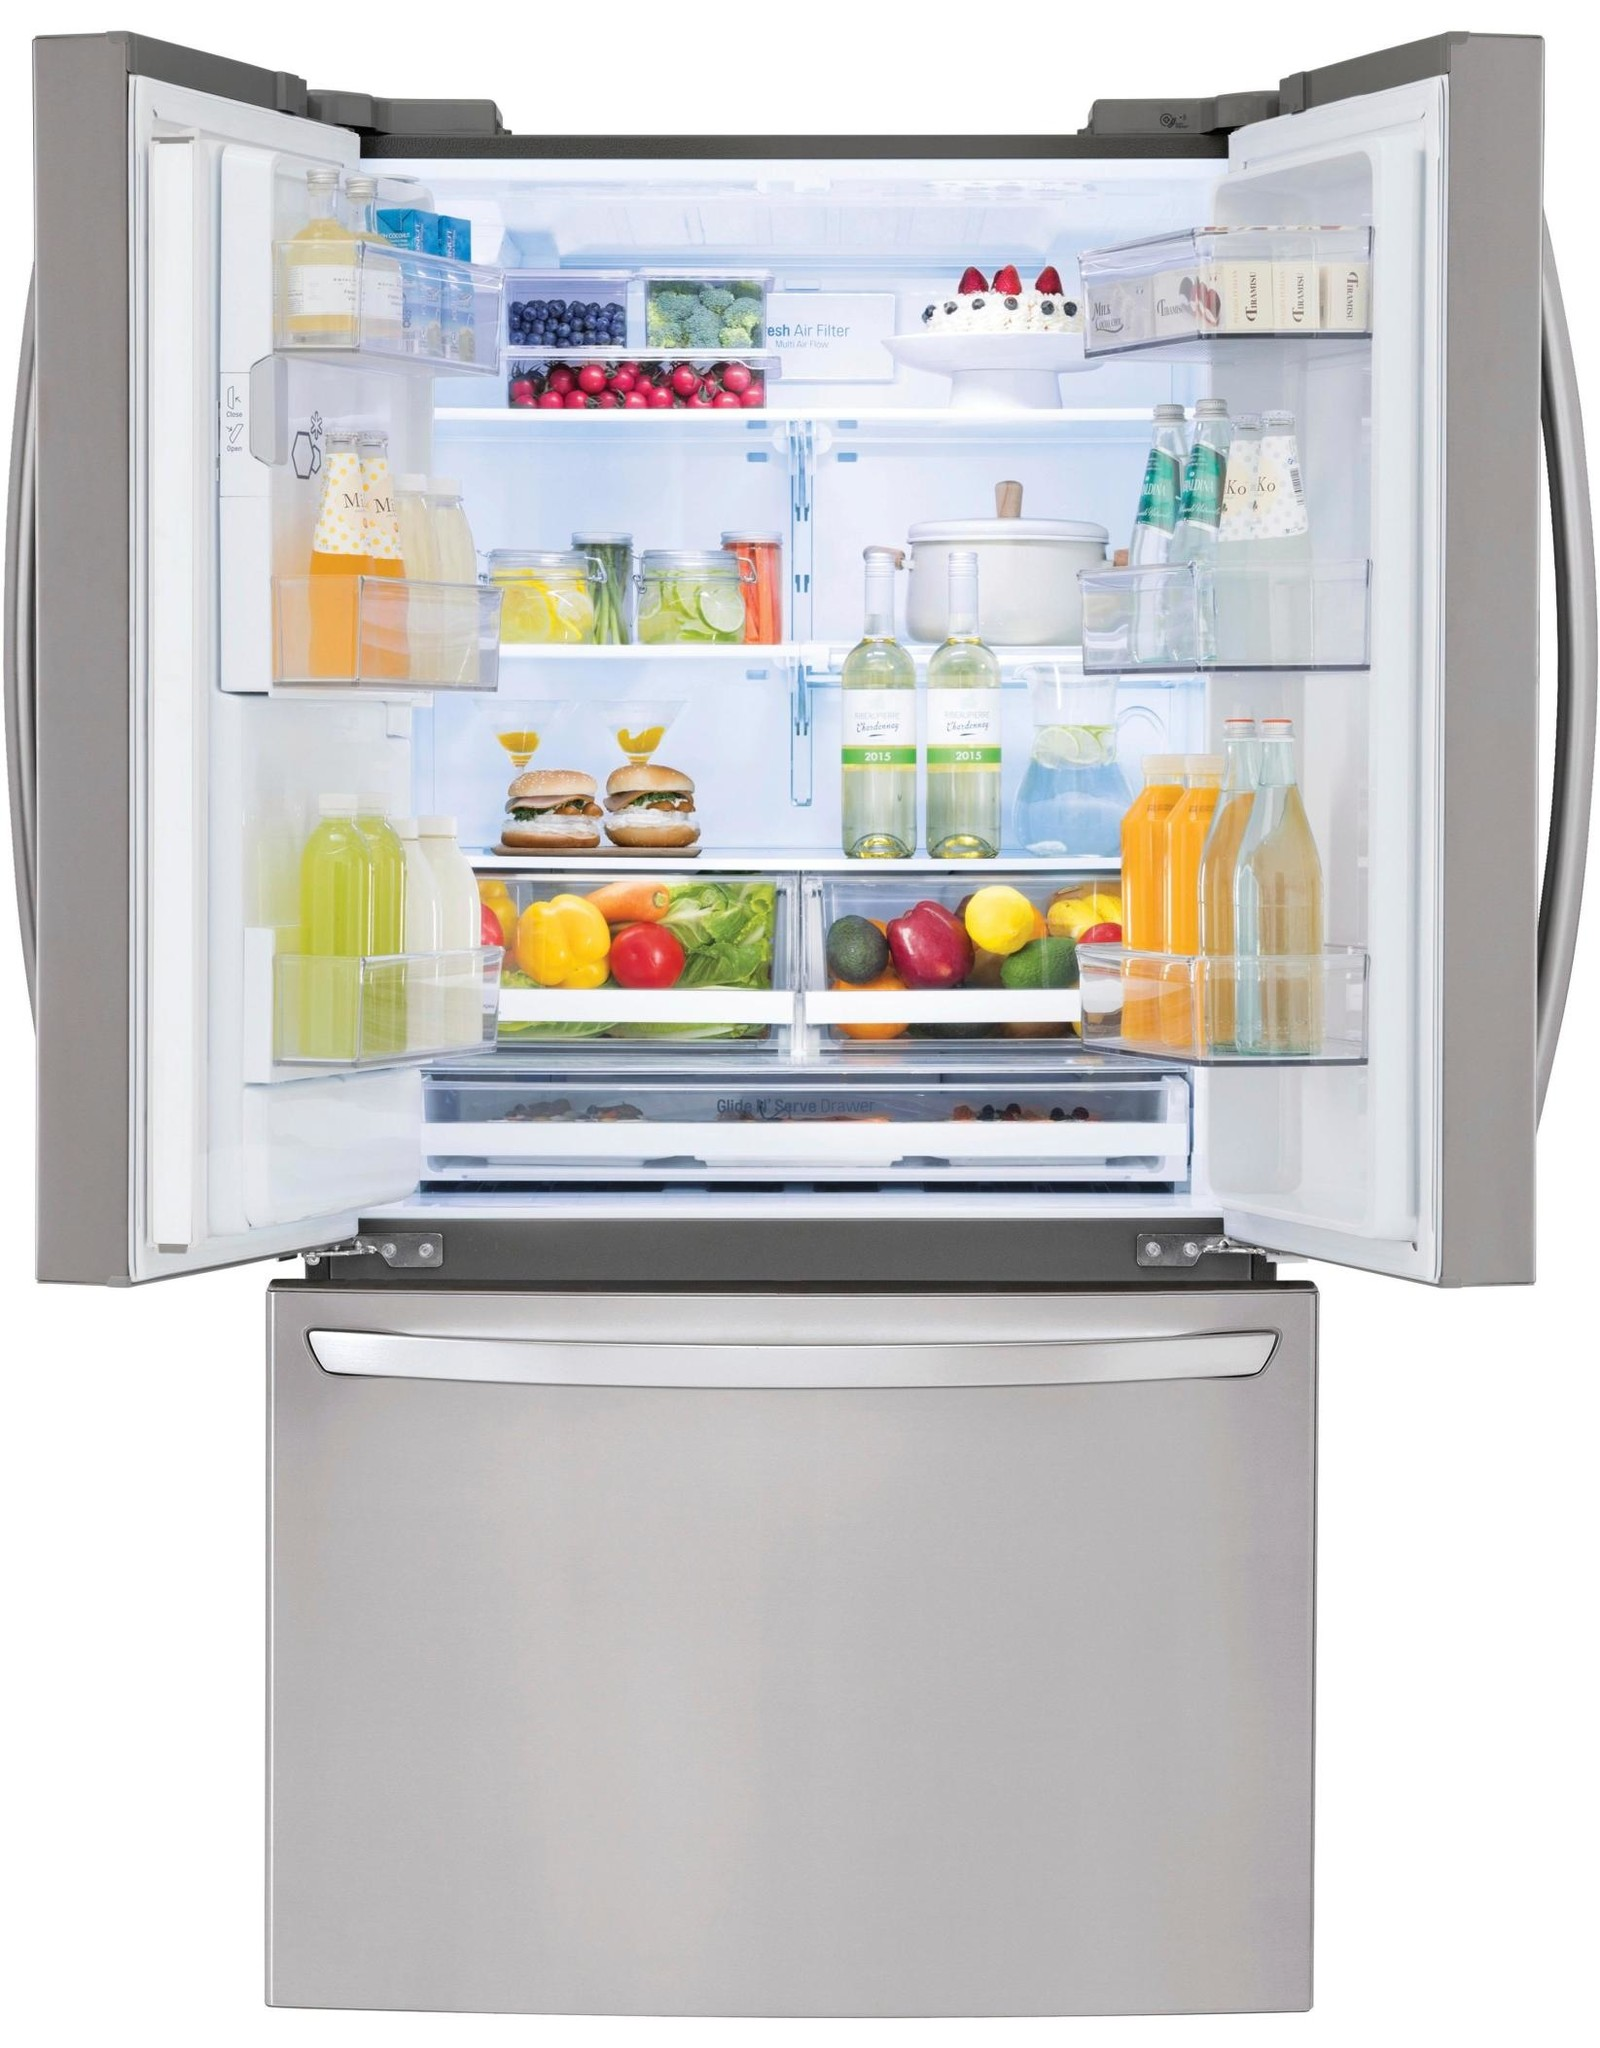 LG Electronics LG Electronics 27.9 cu. ft. French Door Smart Refrigerator with Wi-Fi Enabled in Stainless Steel